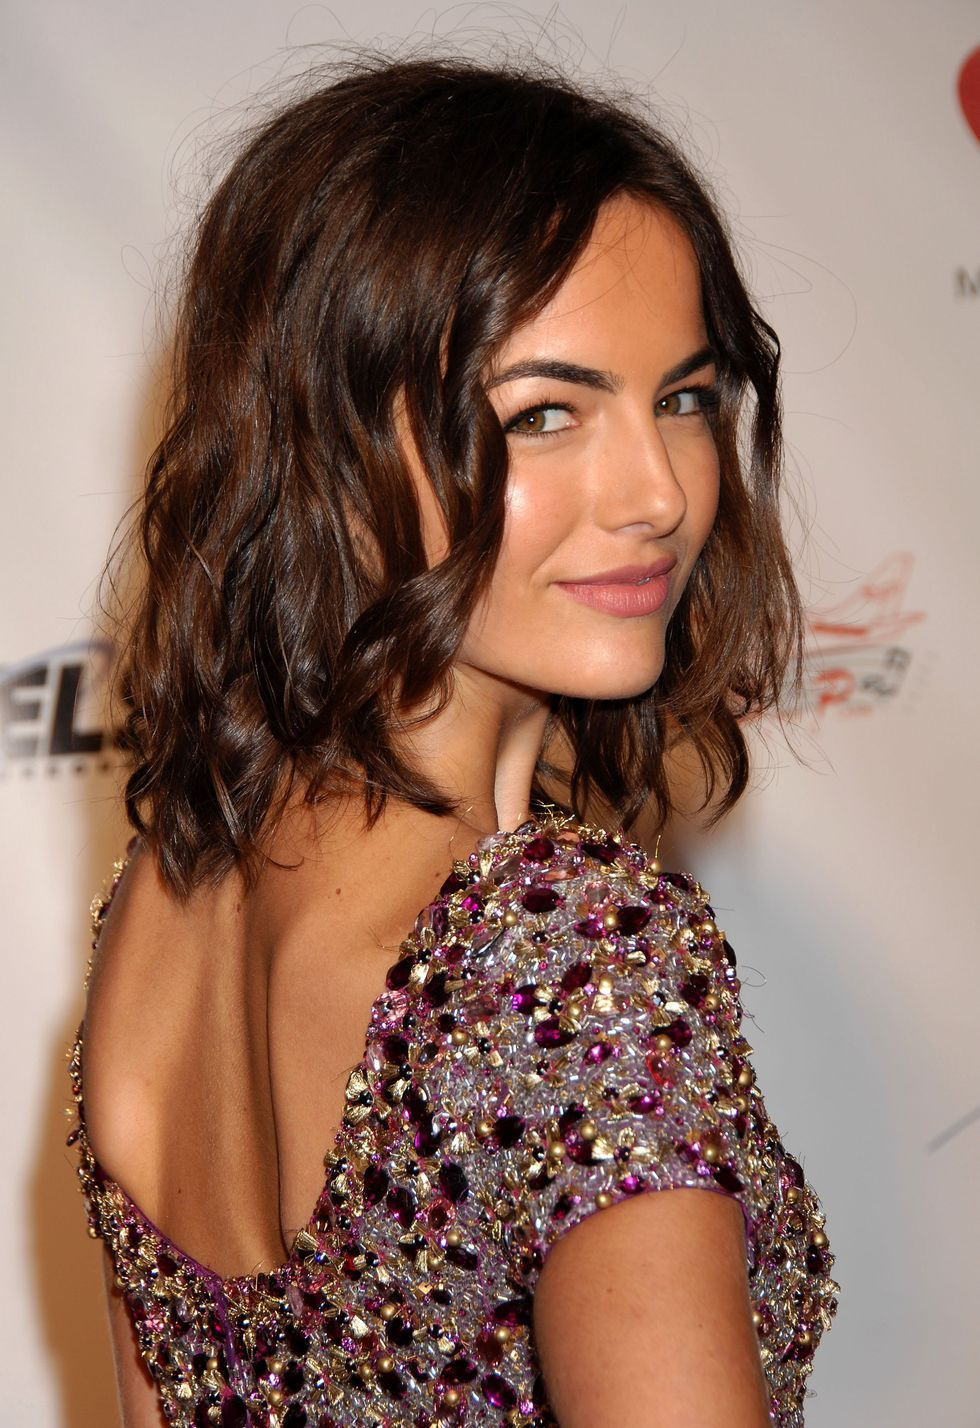 Camilla Belle After Bangs Grow Out Camilla Belle Pinterest